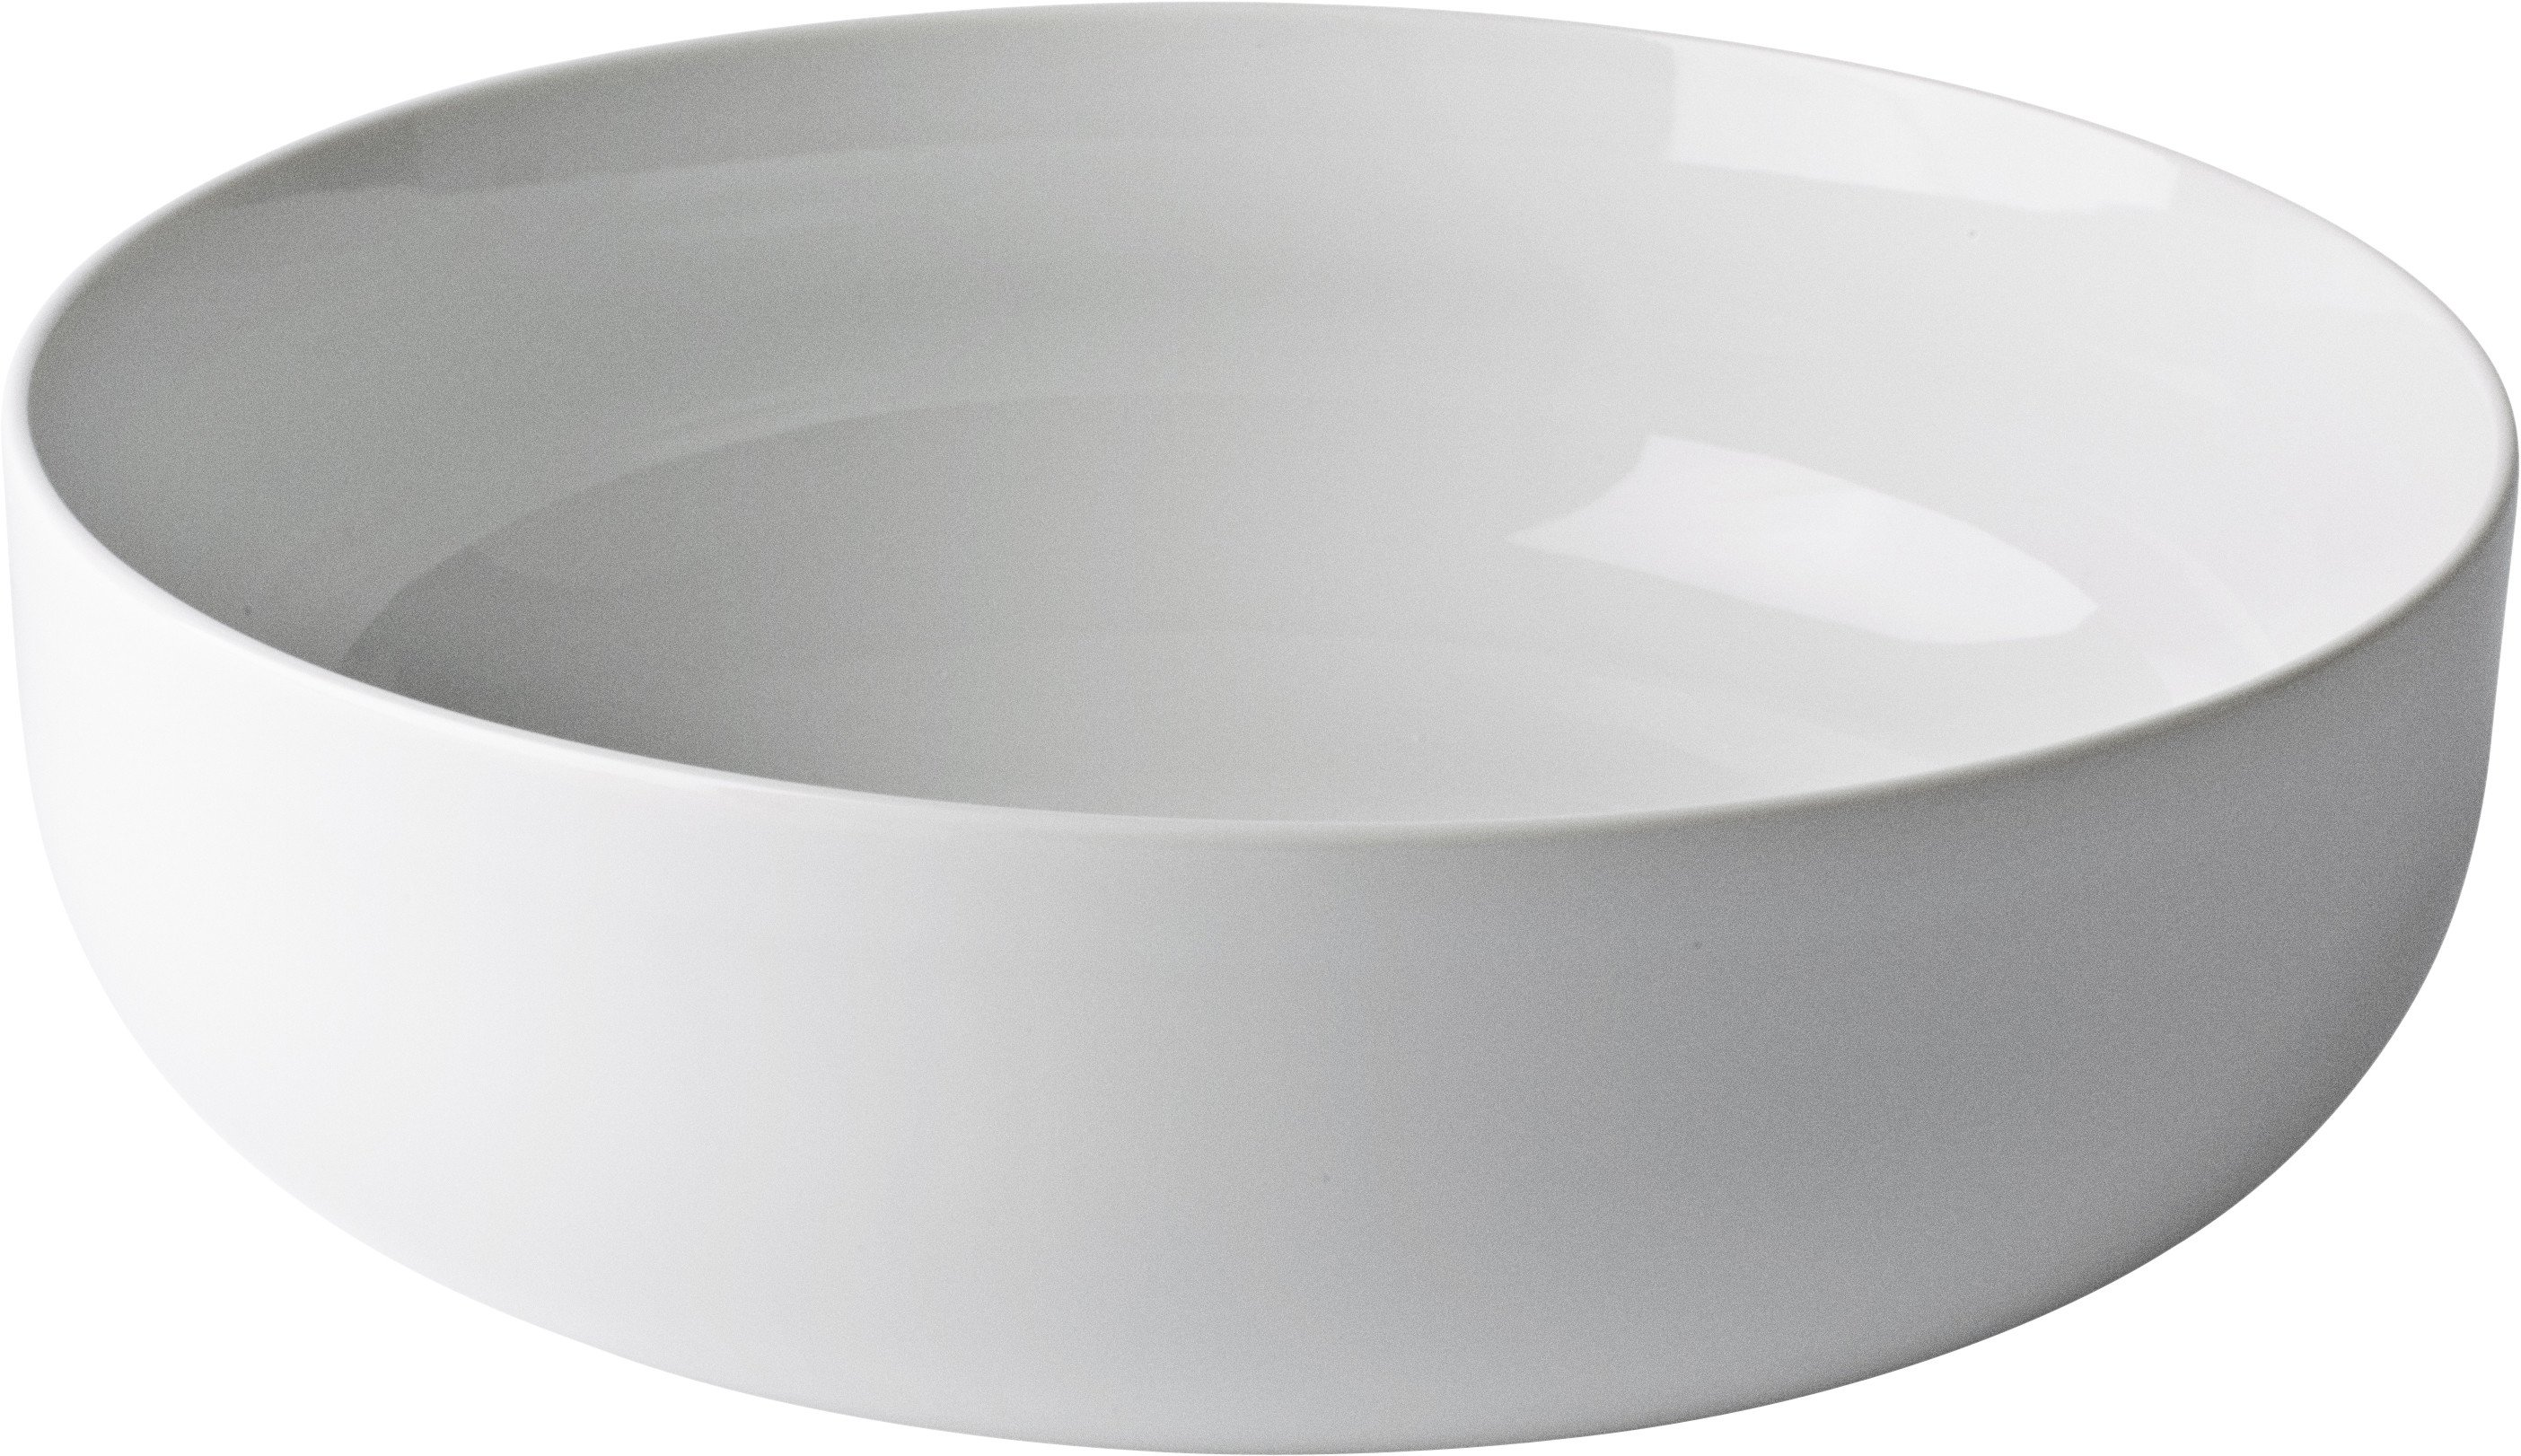 New Norm Bowl Smoke Ø 21,5cm by Norm Architects for Menu